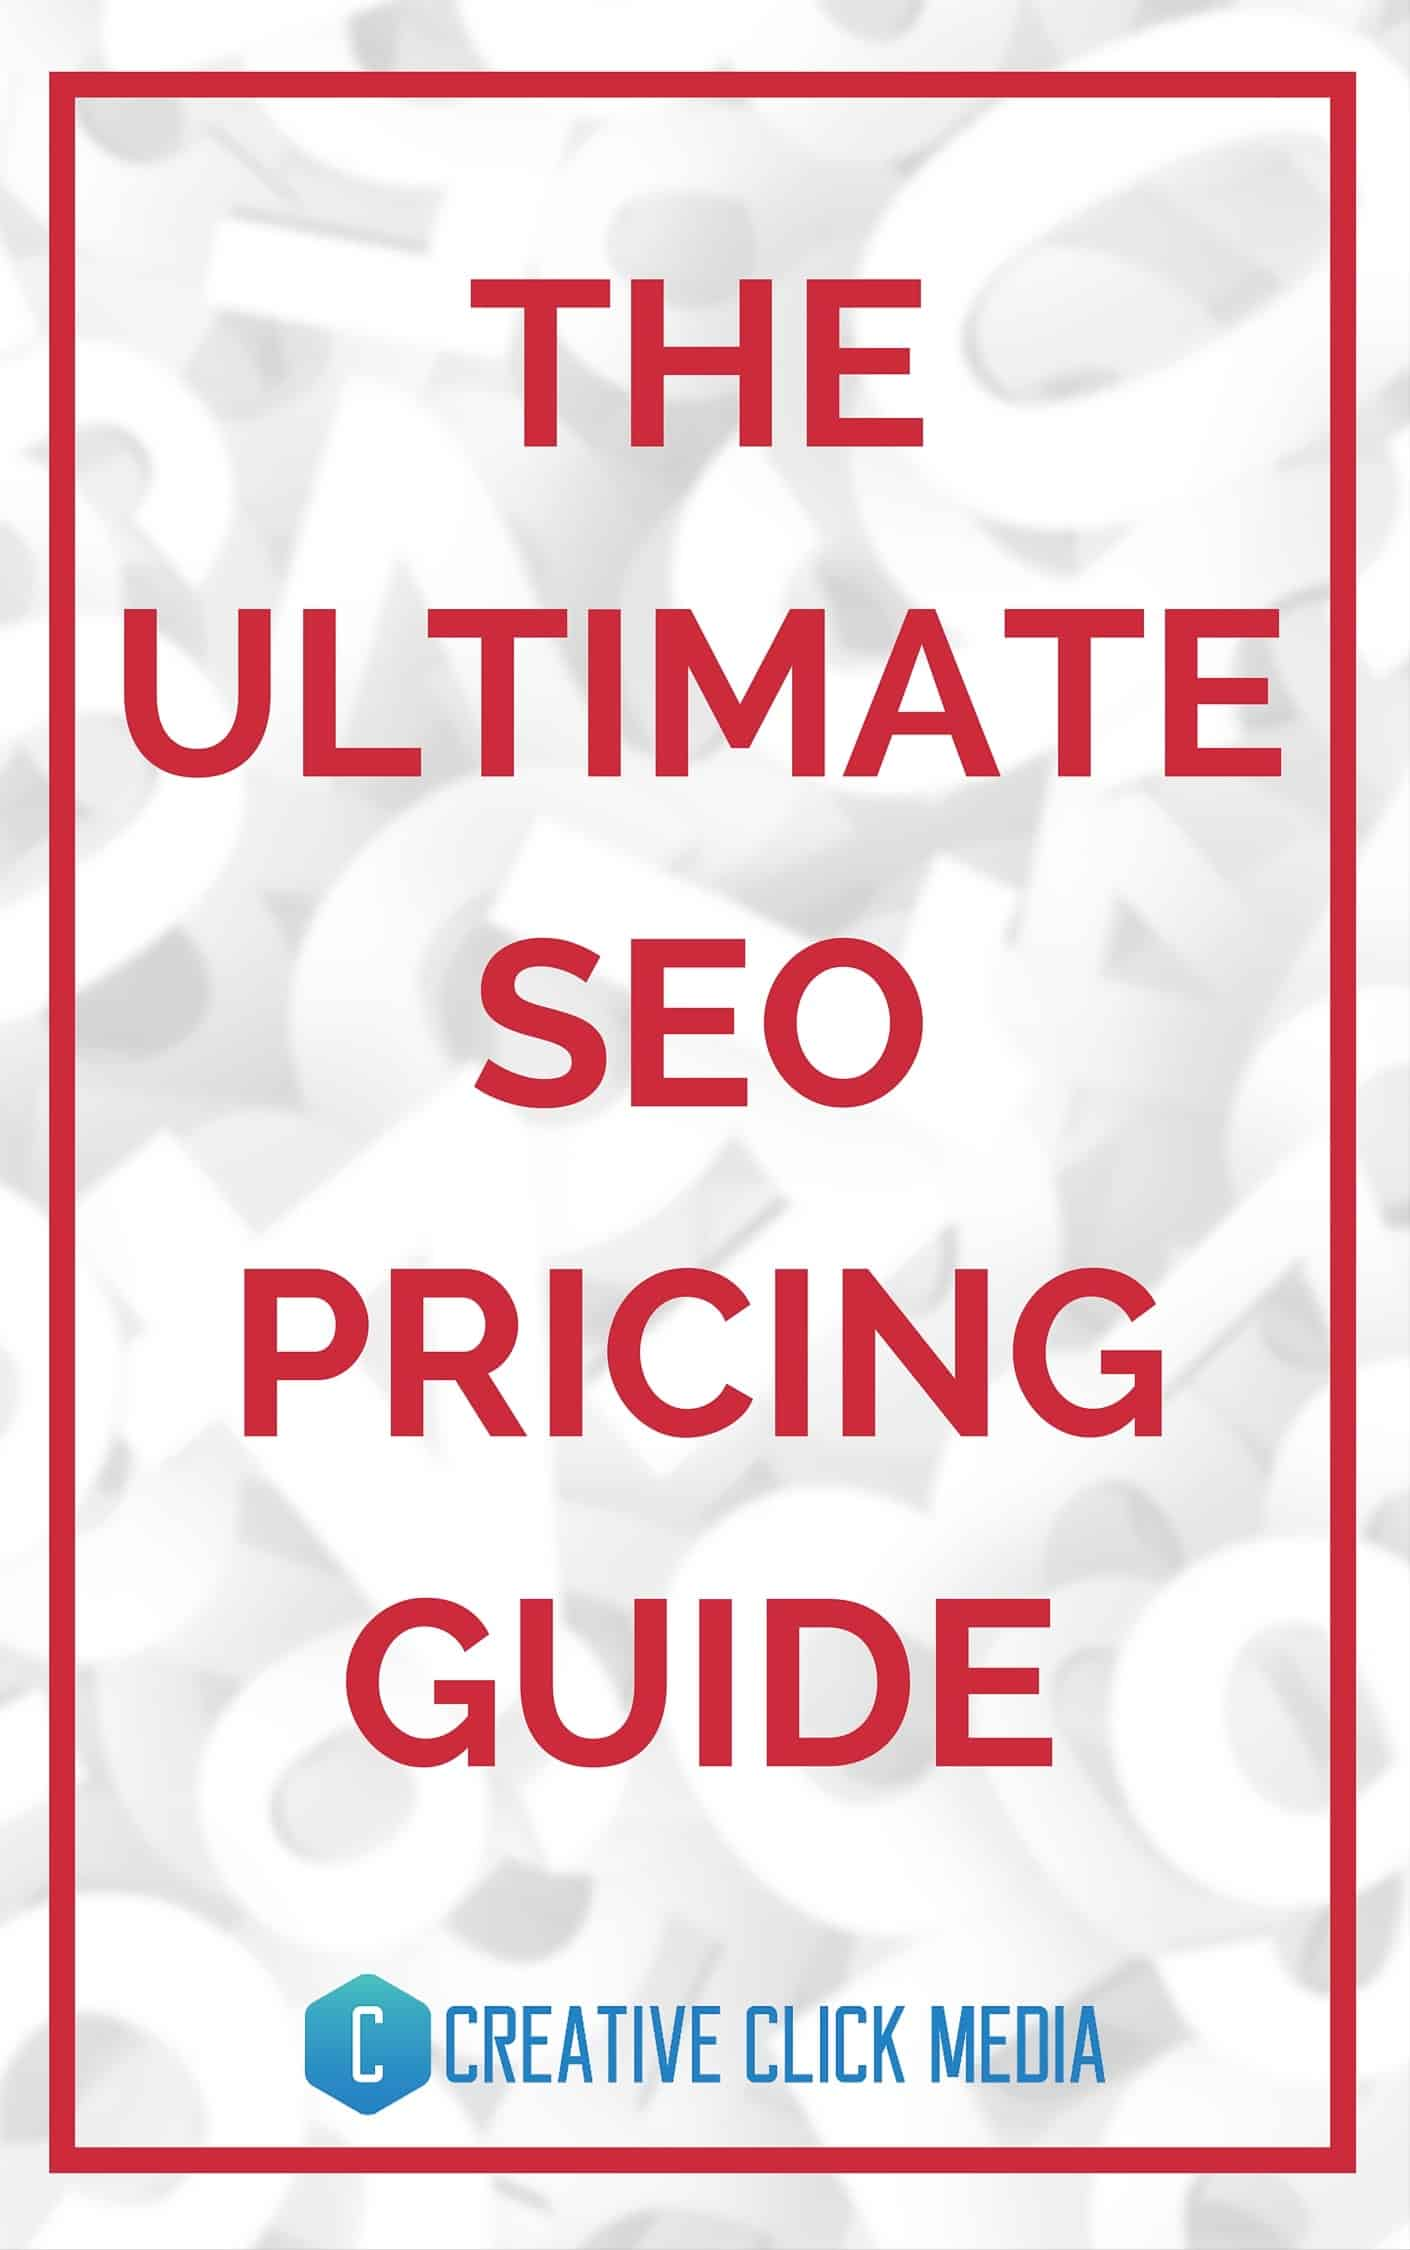 The Ultimate SEO Pricing Guide (2)